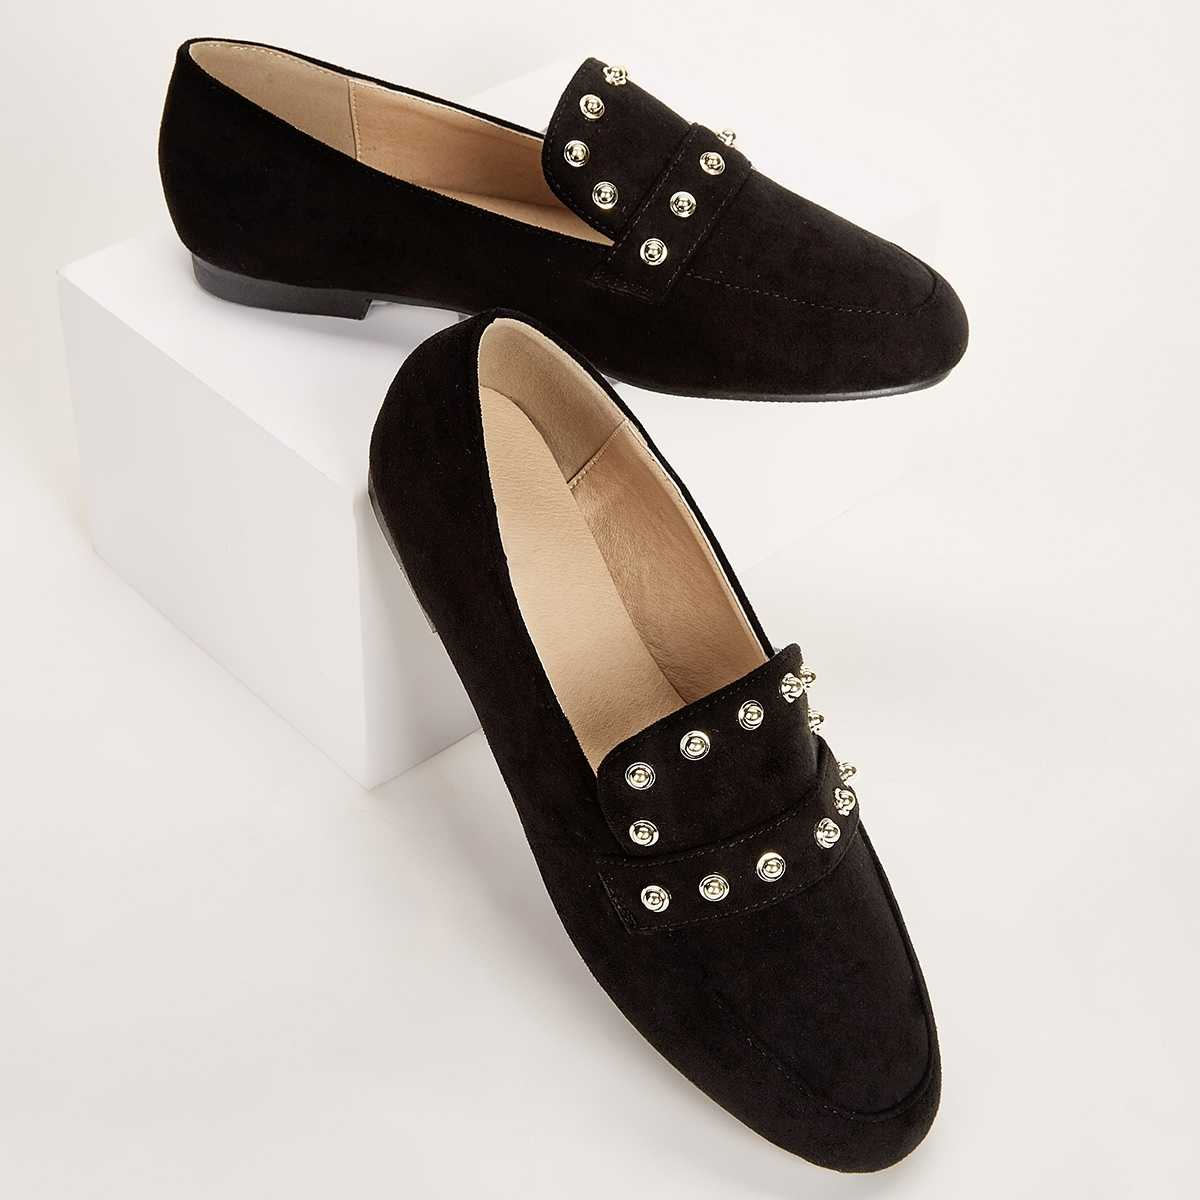 Studded Decor Slip On Flats in Black by ROMWE on GOOFASH